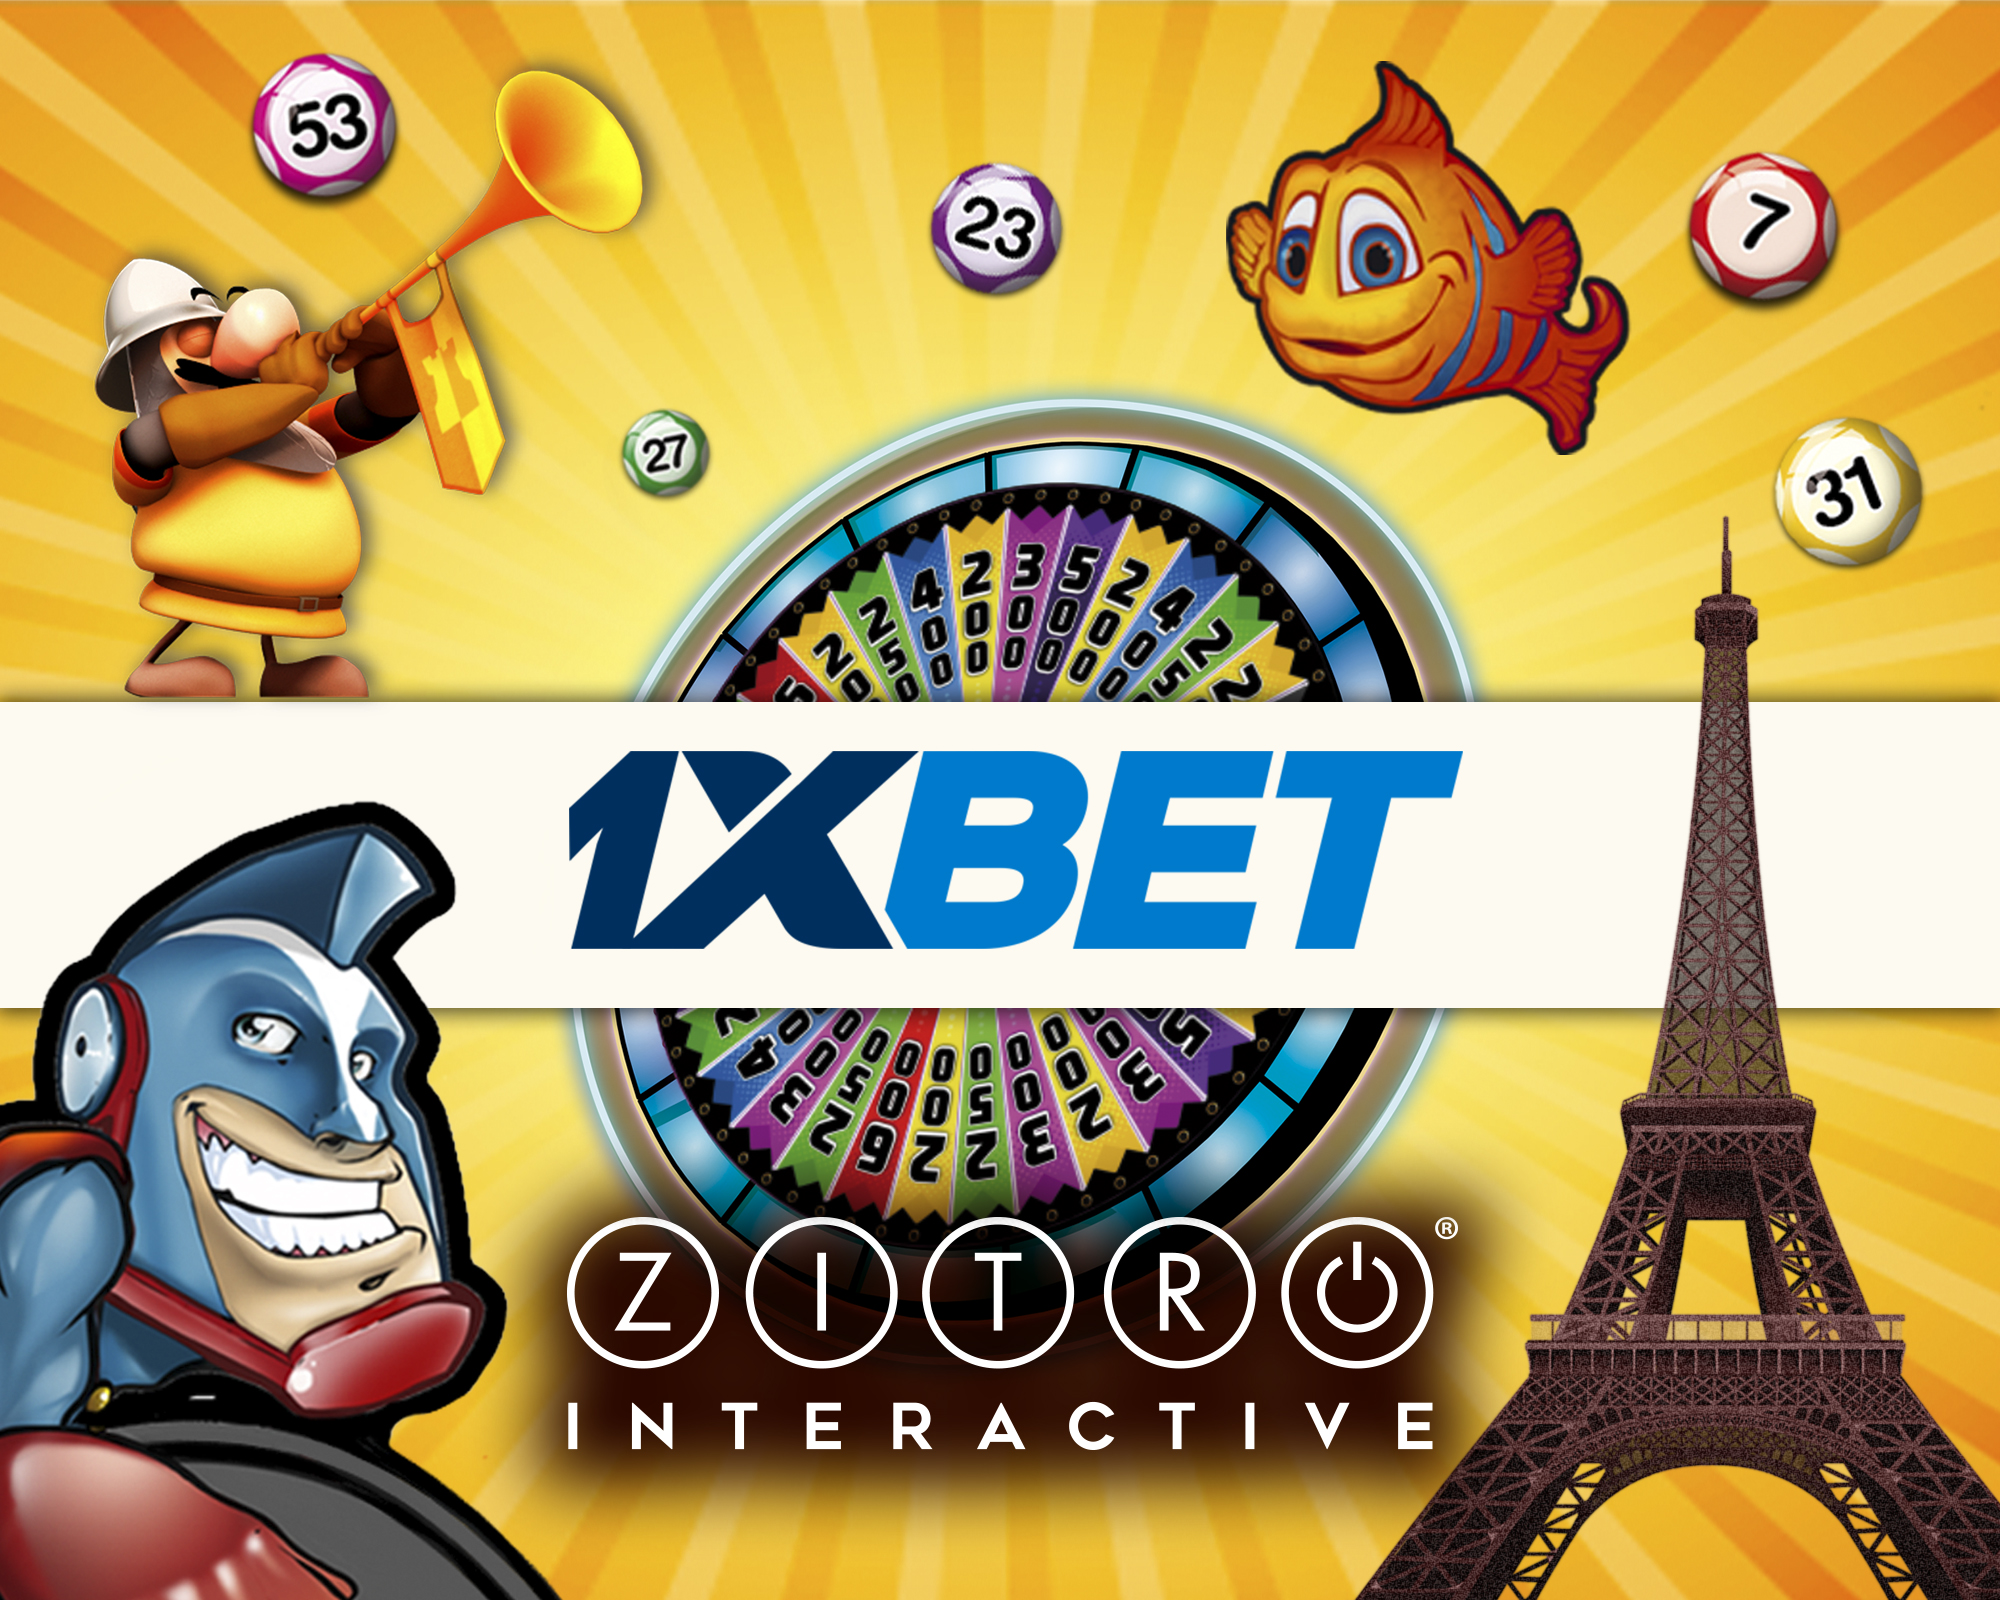 Zitro's online games now available at 1xbet.com